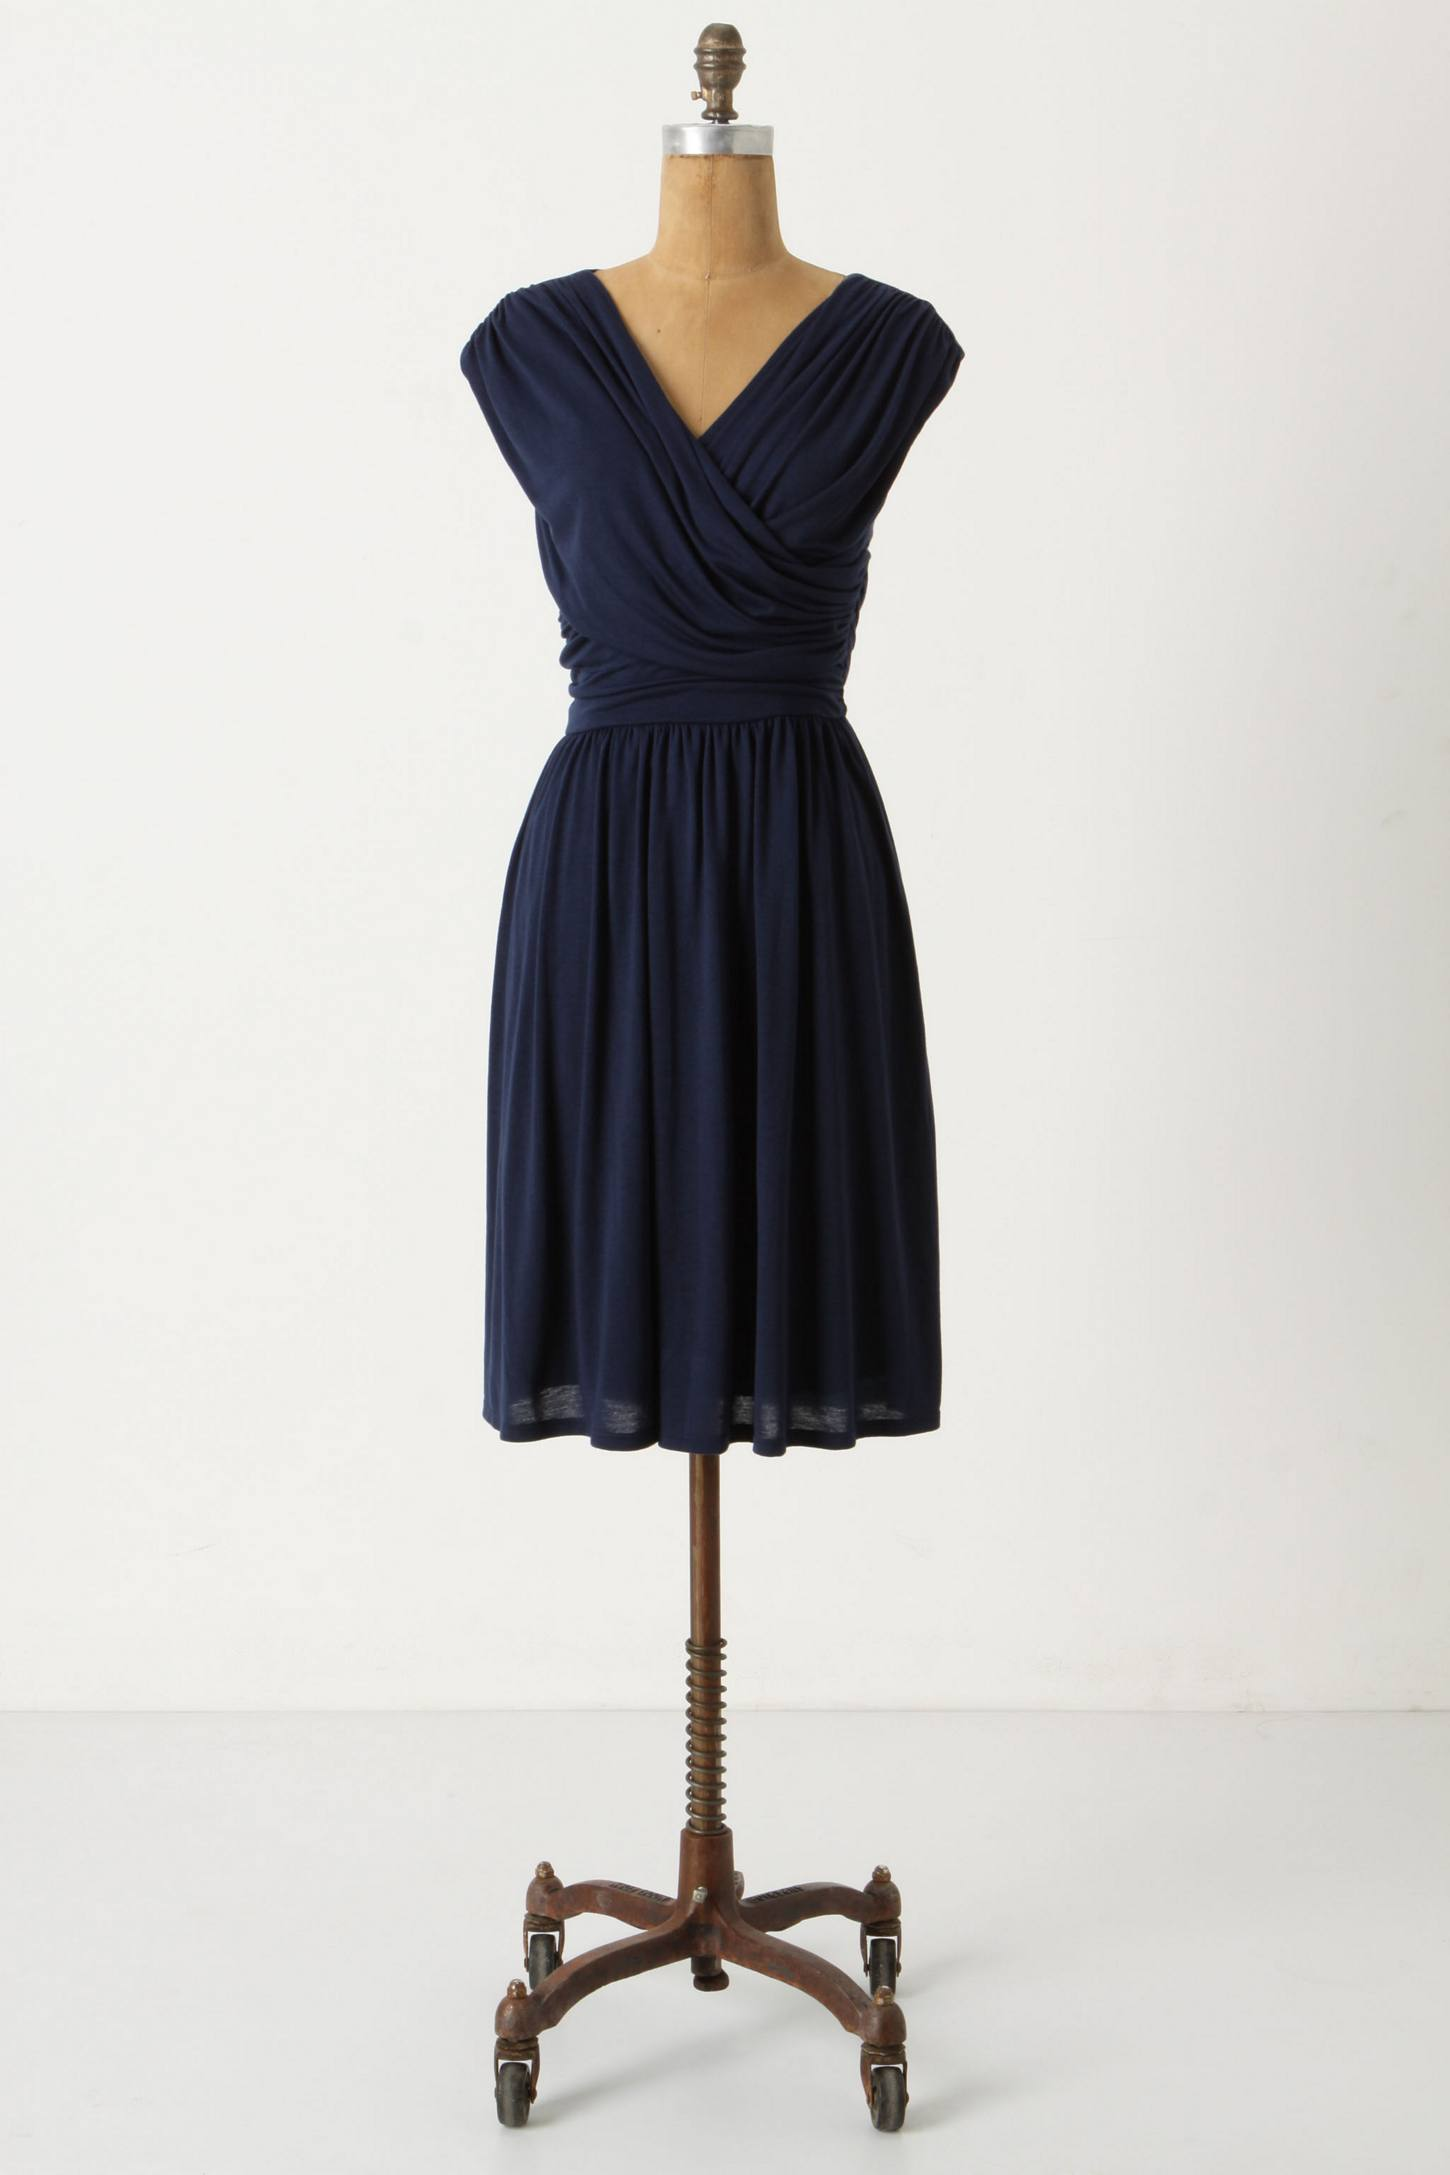 Whirligig Dress - Anthropologie.com